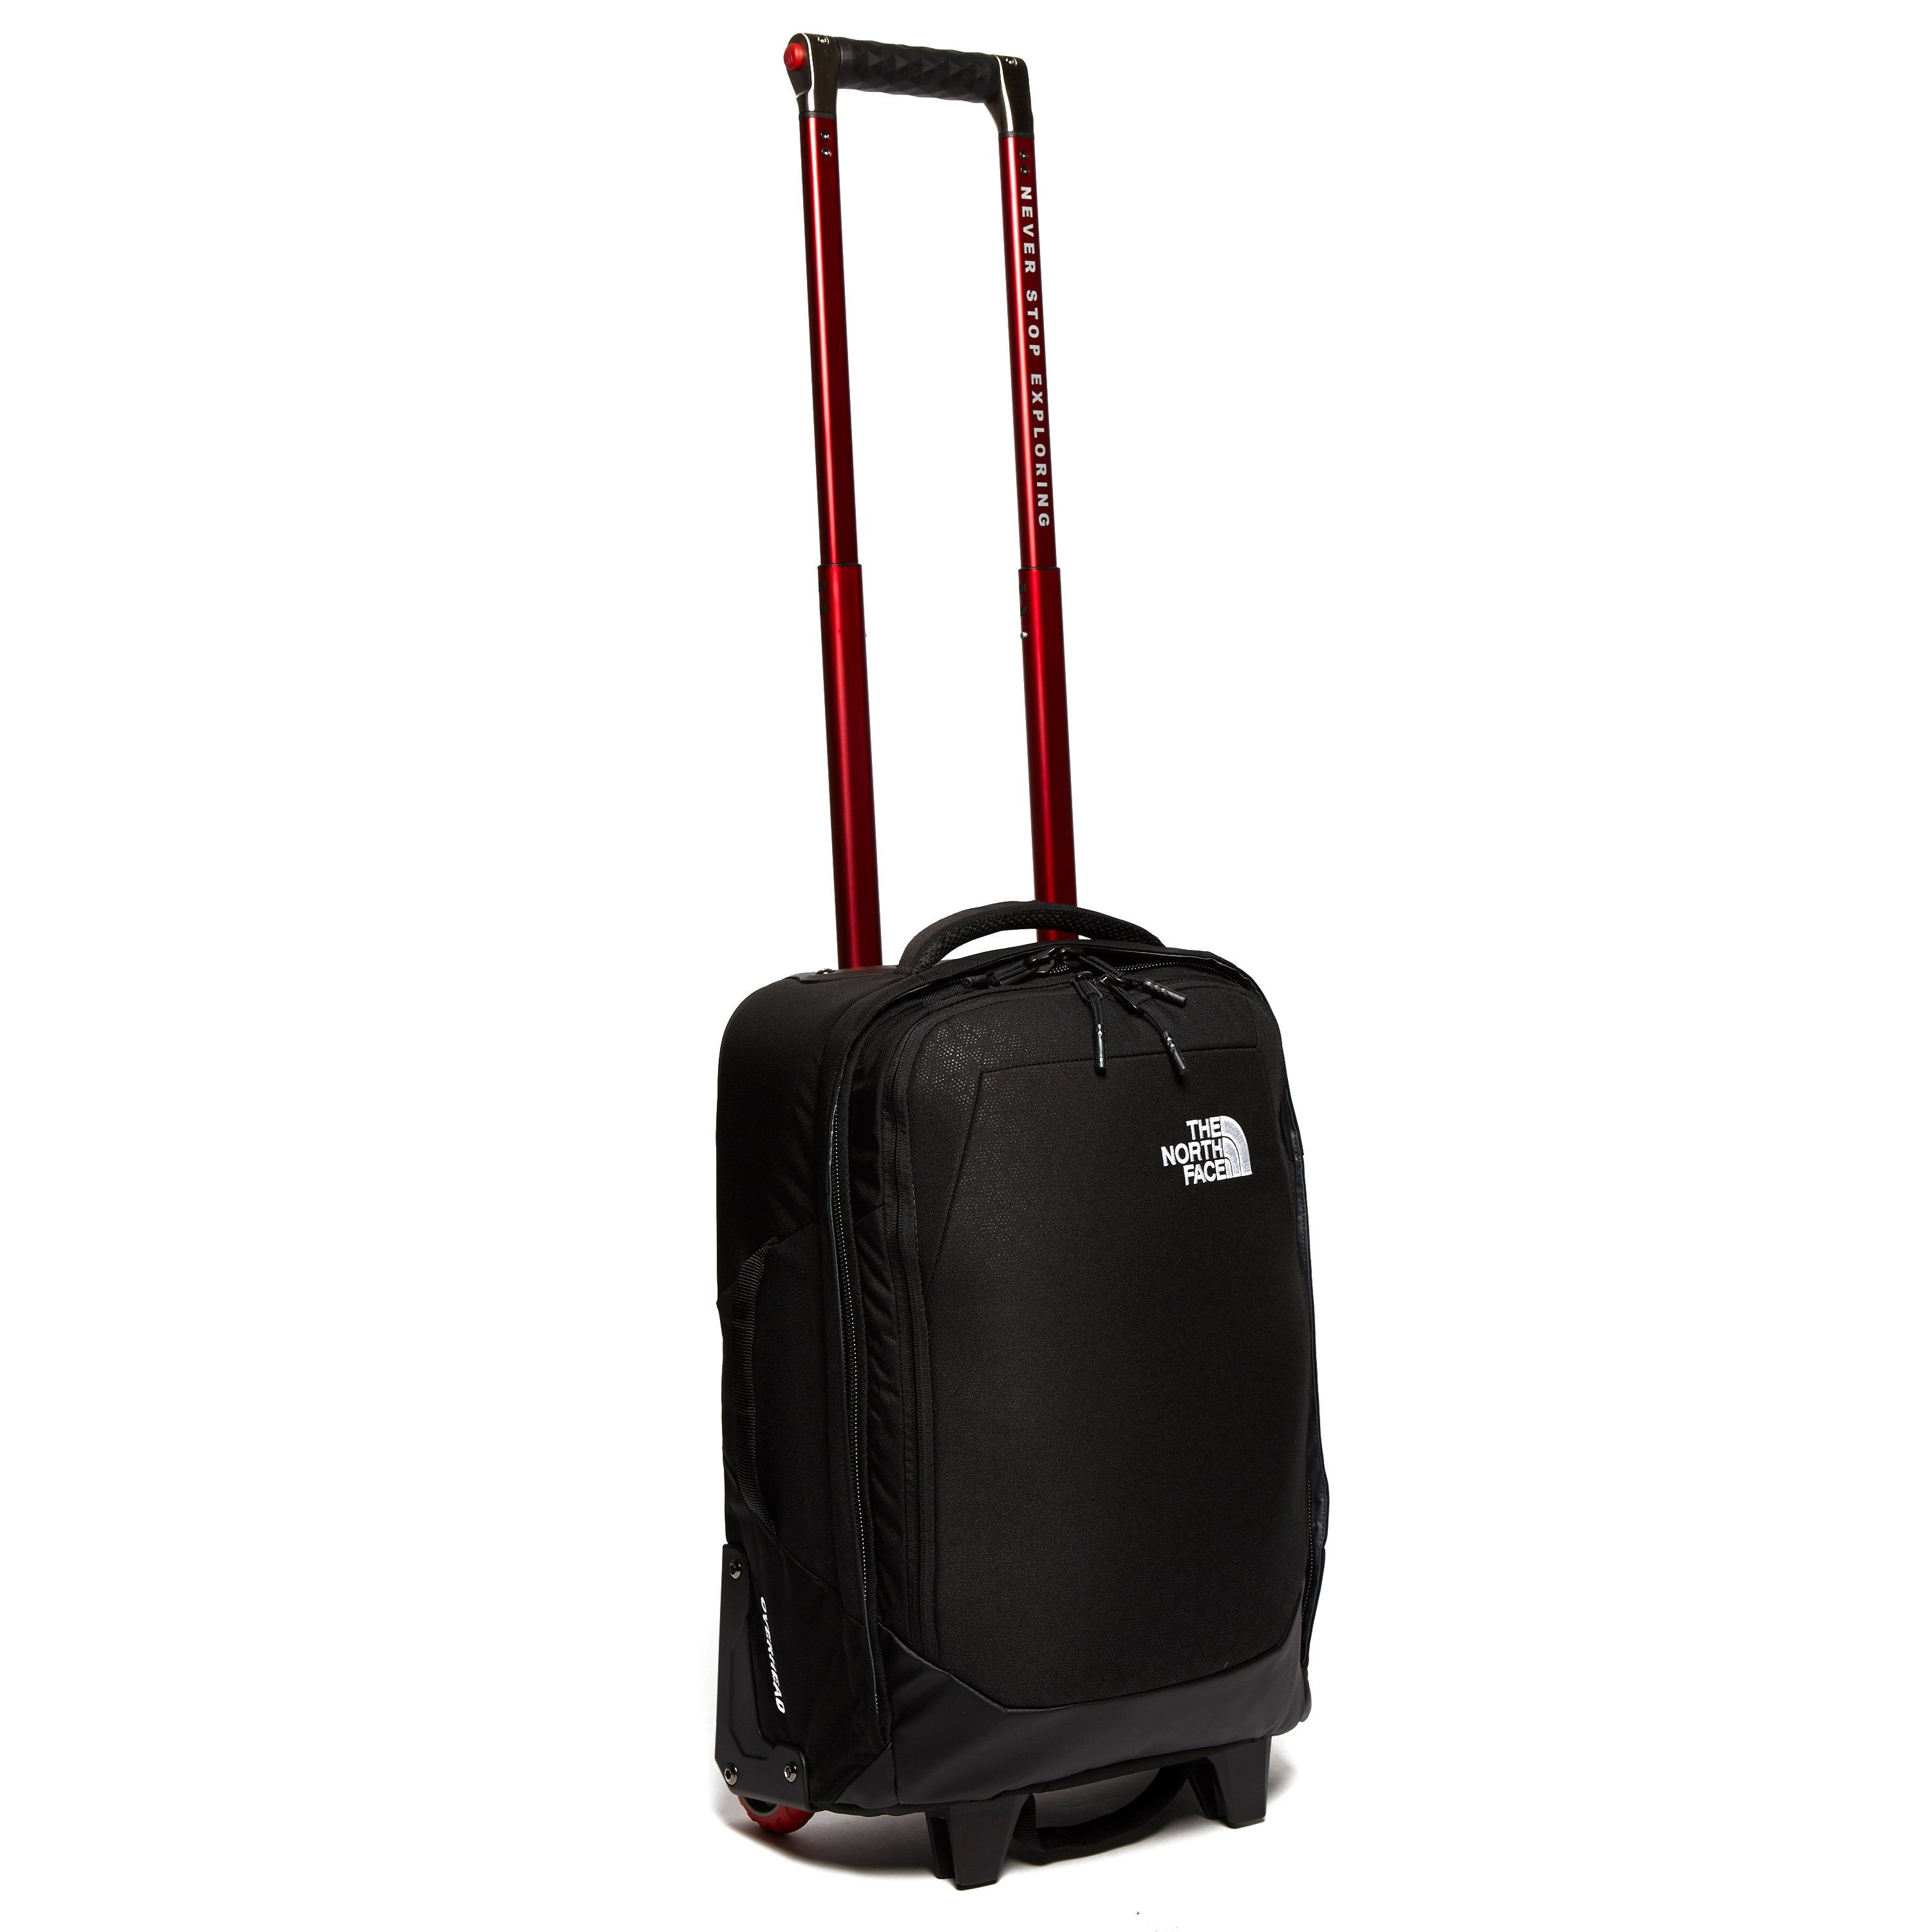 THE NORTH FACE Overhead 35L Travel Bag